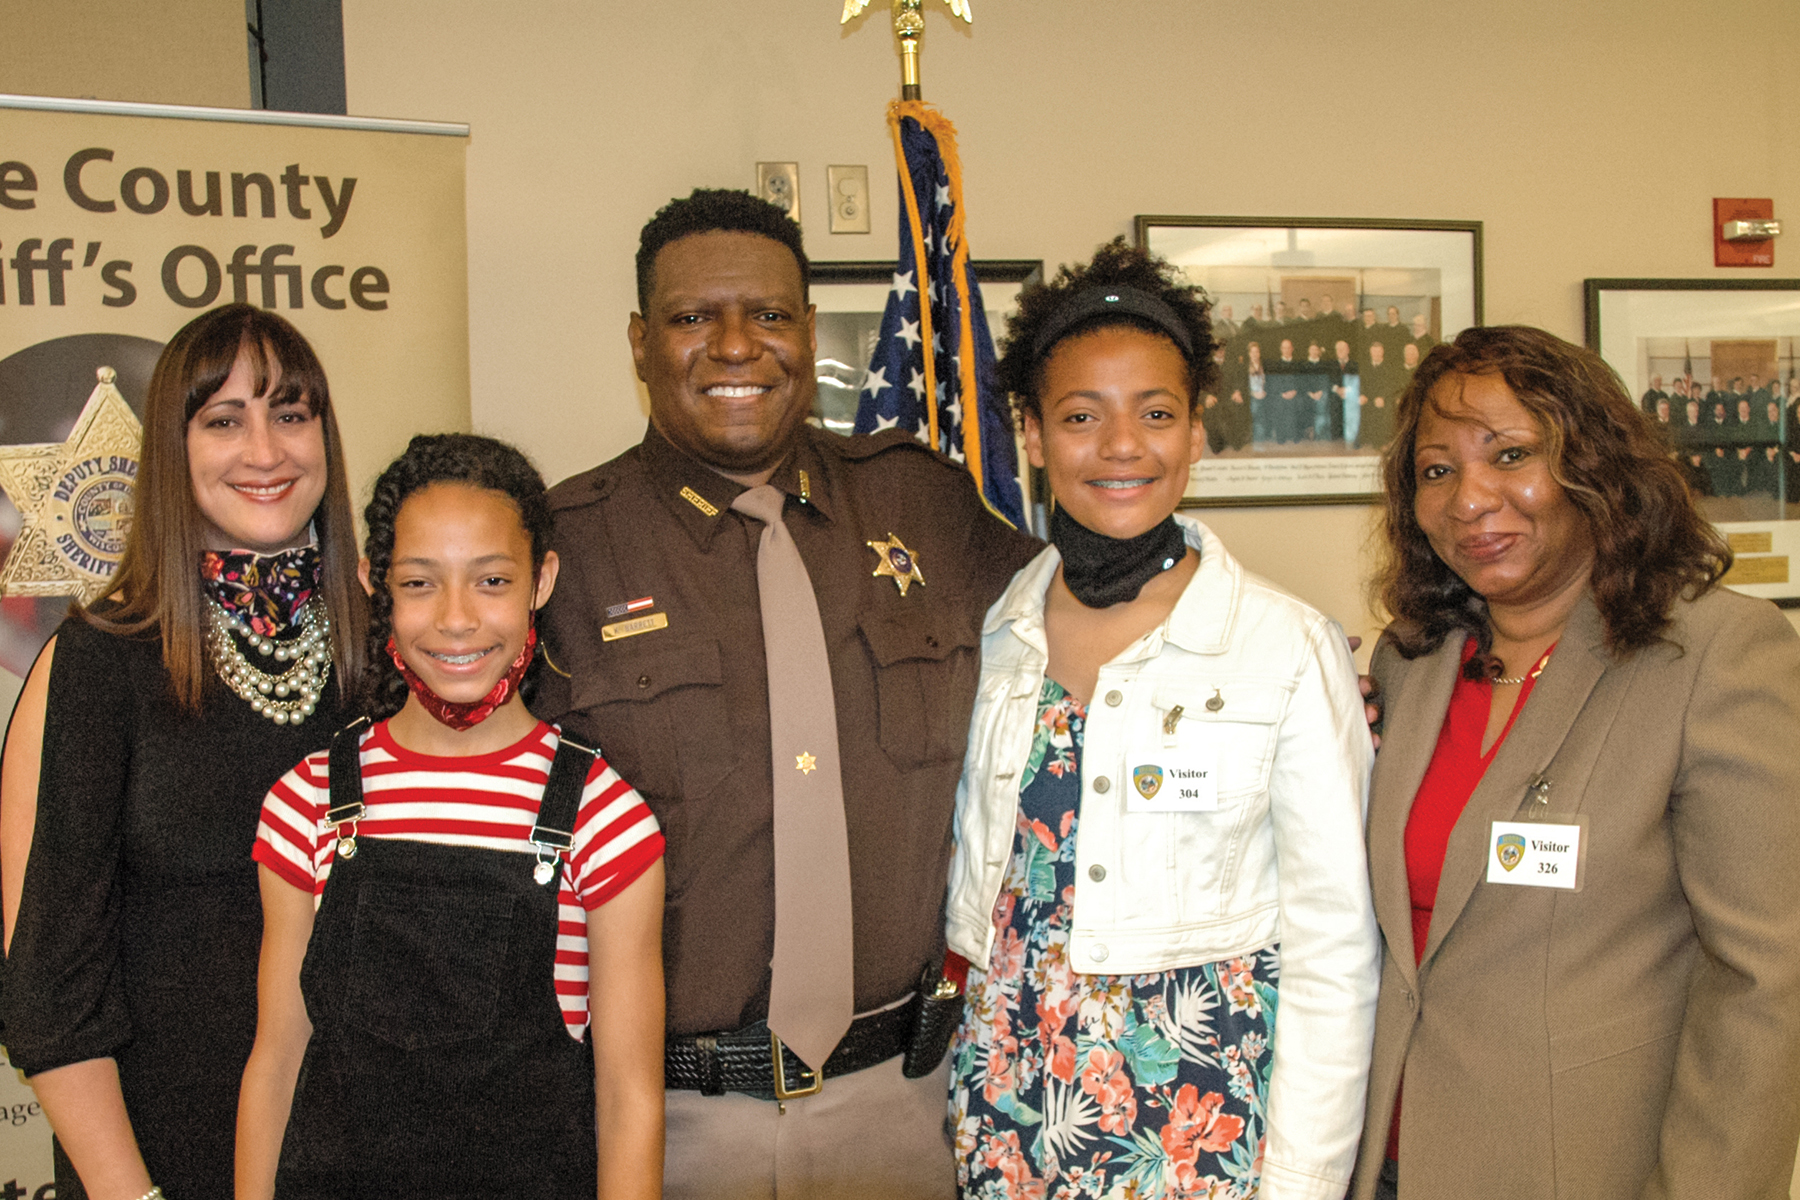 Kalvin Barrett Makes History As First Black Dane County Sheriff Advancing diversity on the force. Keeping the inmate population down. And, developing a bond of trust between law enforcement agencies and the communities they serve.